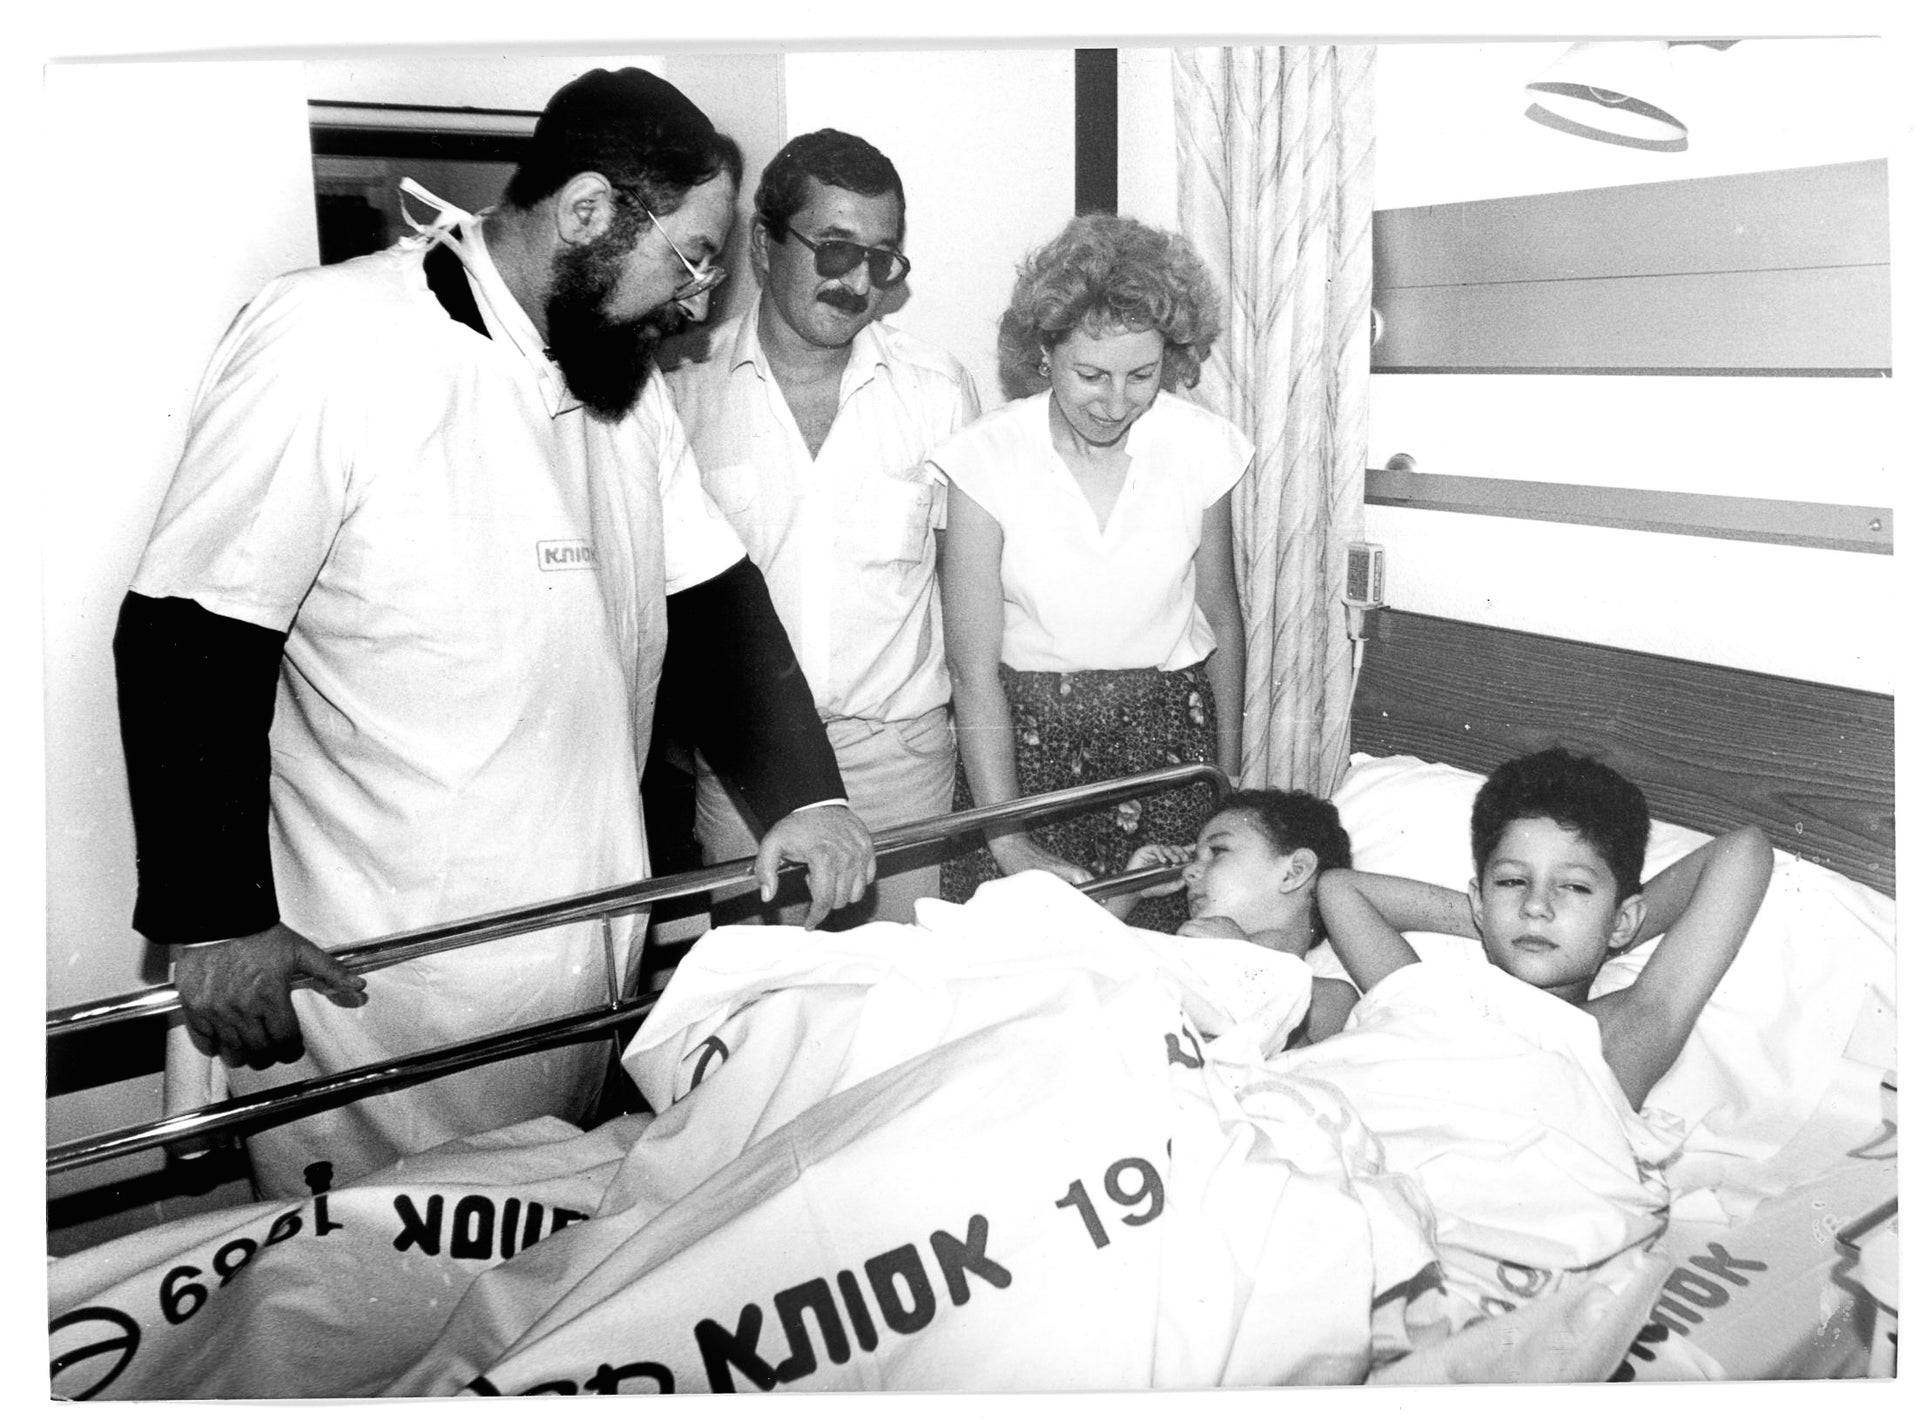 Two young, new immigrant brothers, with Yisrael Meir Lau, then chief rabbi of Tel Aviv, after their circumcision at Assuta Hospital.